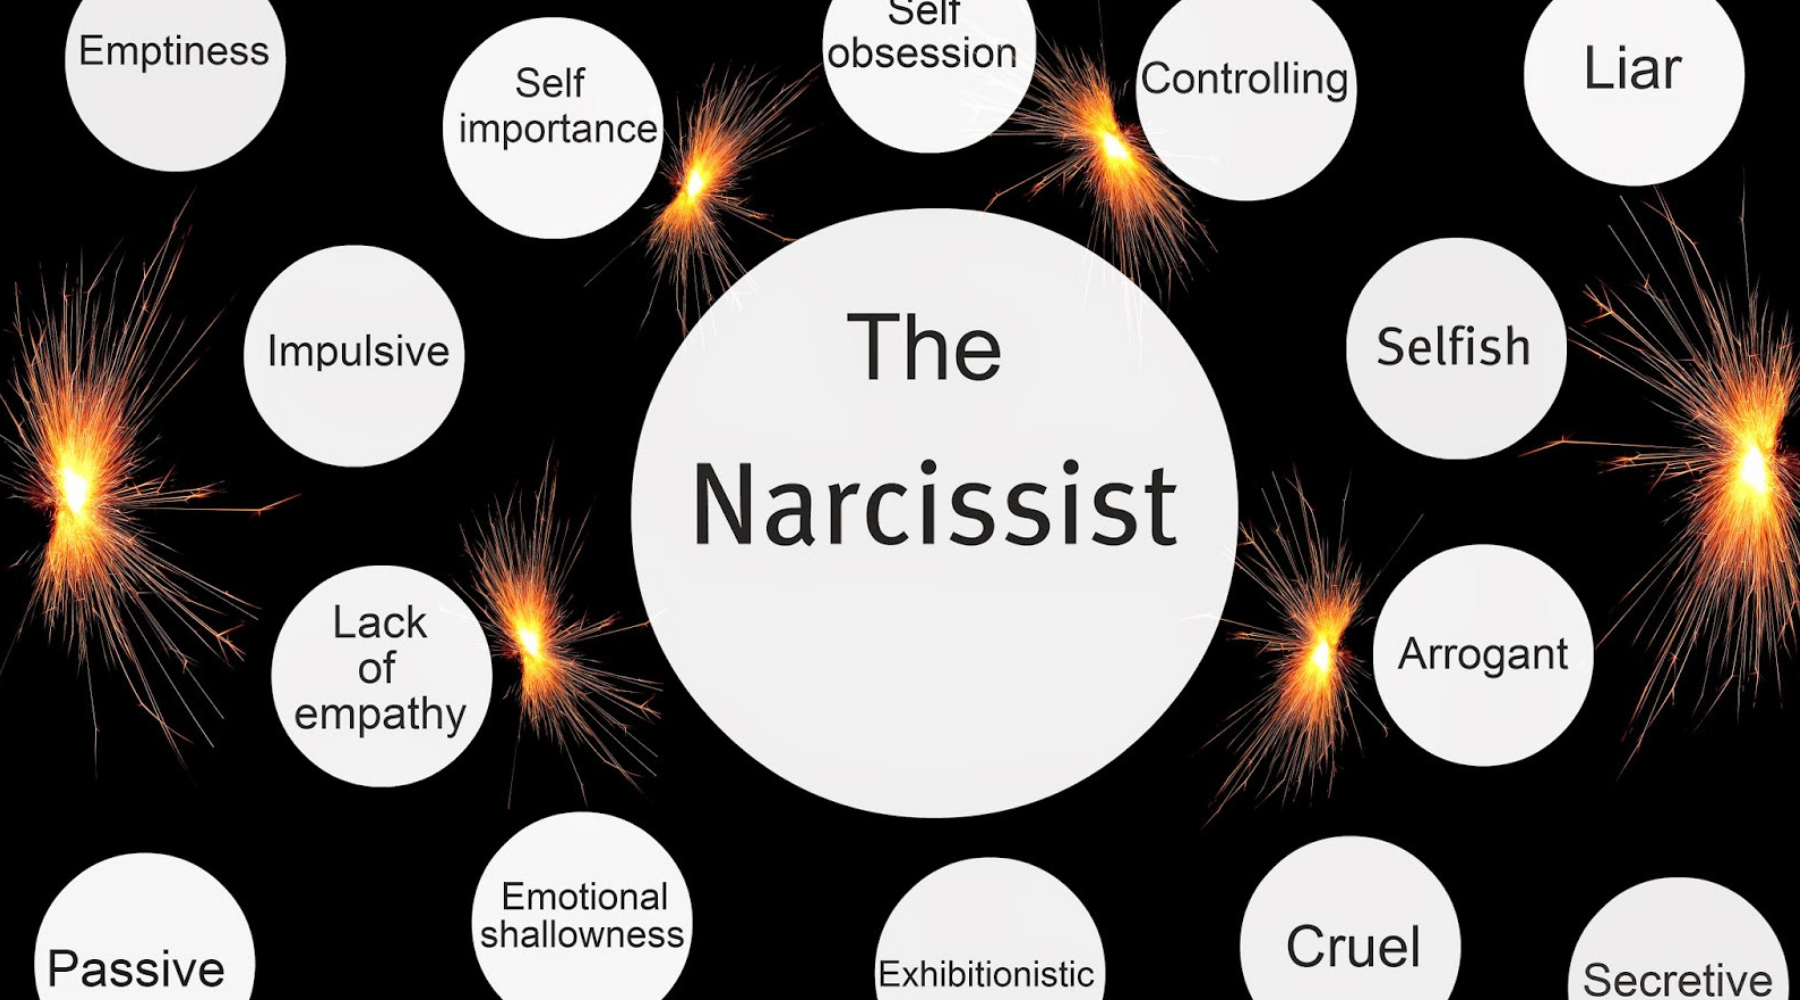 NEW List of Narcissistic Personality Disorder Blogs and Websites for Publishing Guest Posts